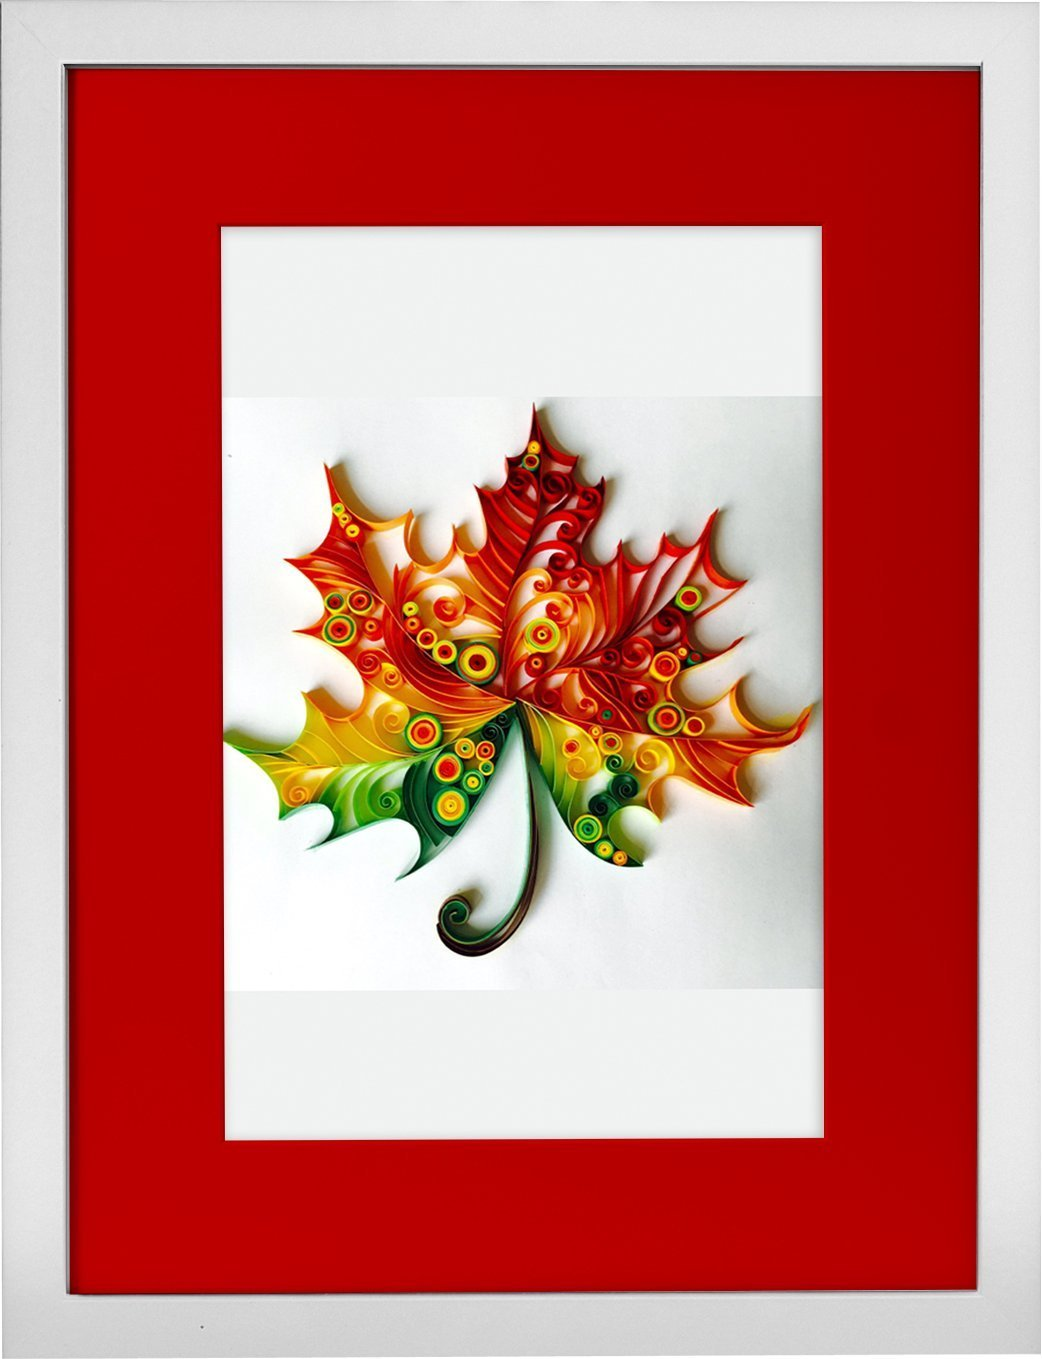 Maple Leaf - Modern Paper Quilled Wall Art for Home Decor (one of a kind paper quilling handcrafted piece made with love by an artist in California)